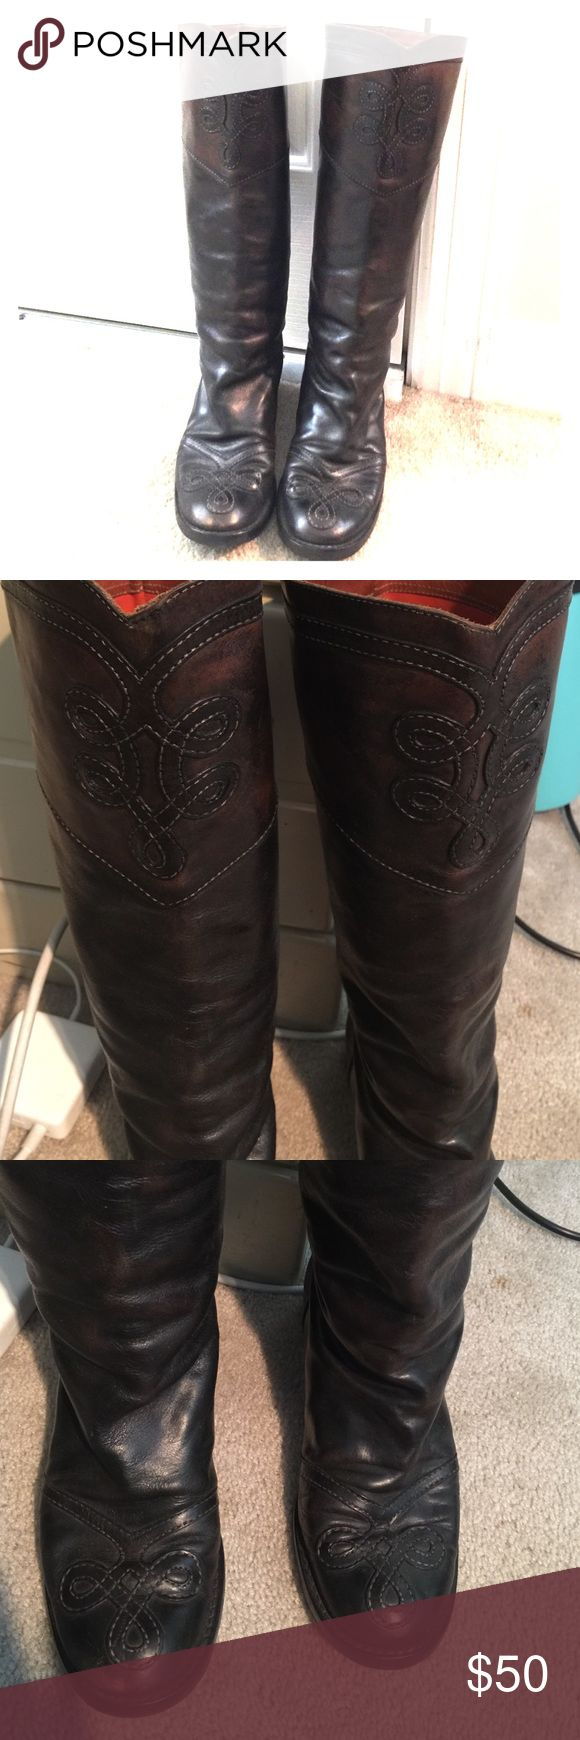 Anna Sui Florentini+Baker dark brown boots! Anna Sui partnered with Florentini+Baker on a range of boots. This is a pair of dark brown boots size 8.5/euro 39. Very comfortable, I had the soles reinforced for better traction for NYC walking. Anna Sui Shoes